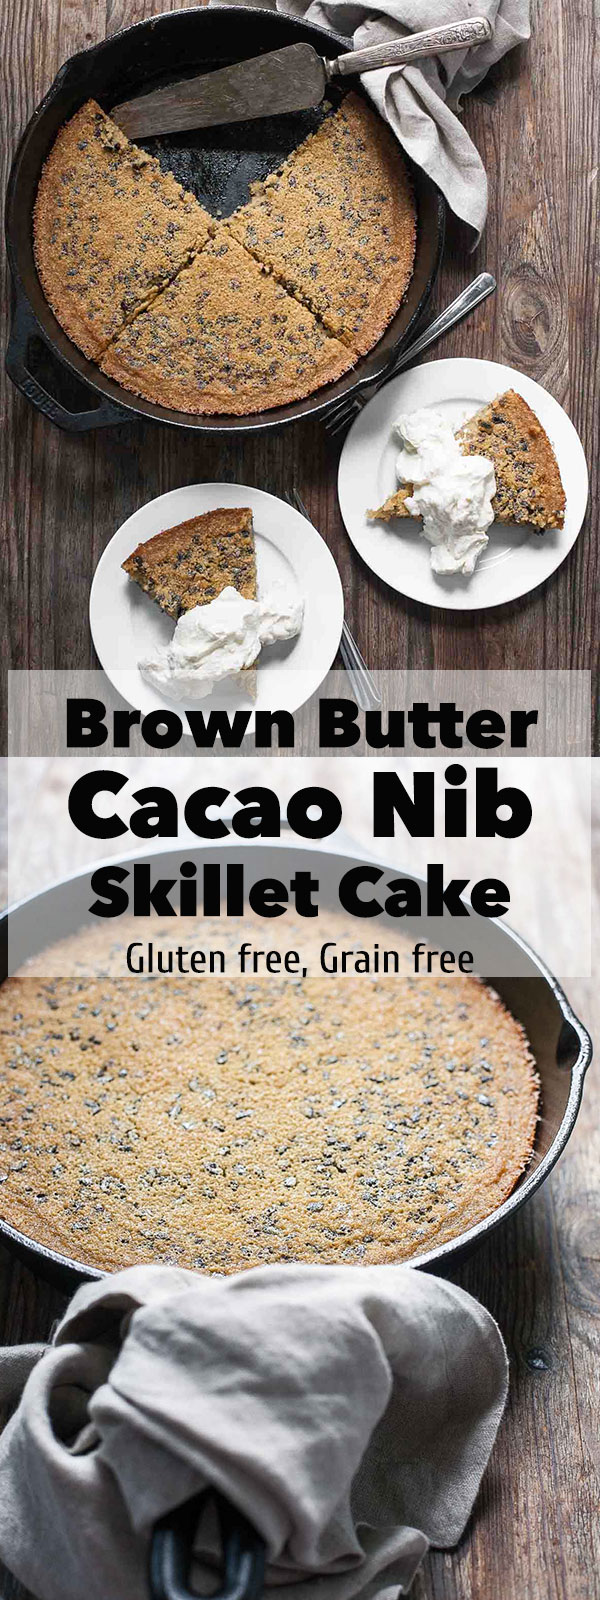 Brown Butter Cacao Nib Skillet Cake (Gluten free, Grain free) | acalculatedwhisk.com